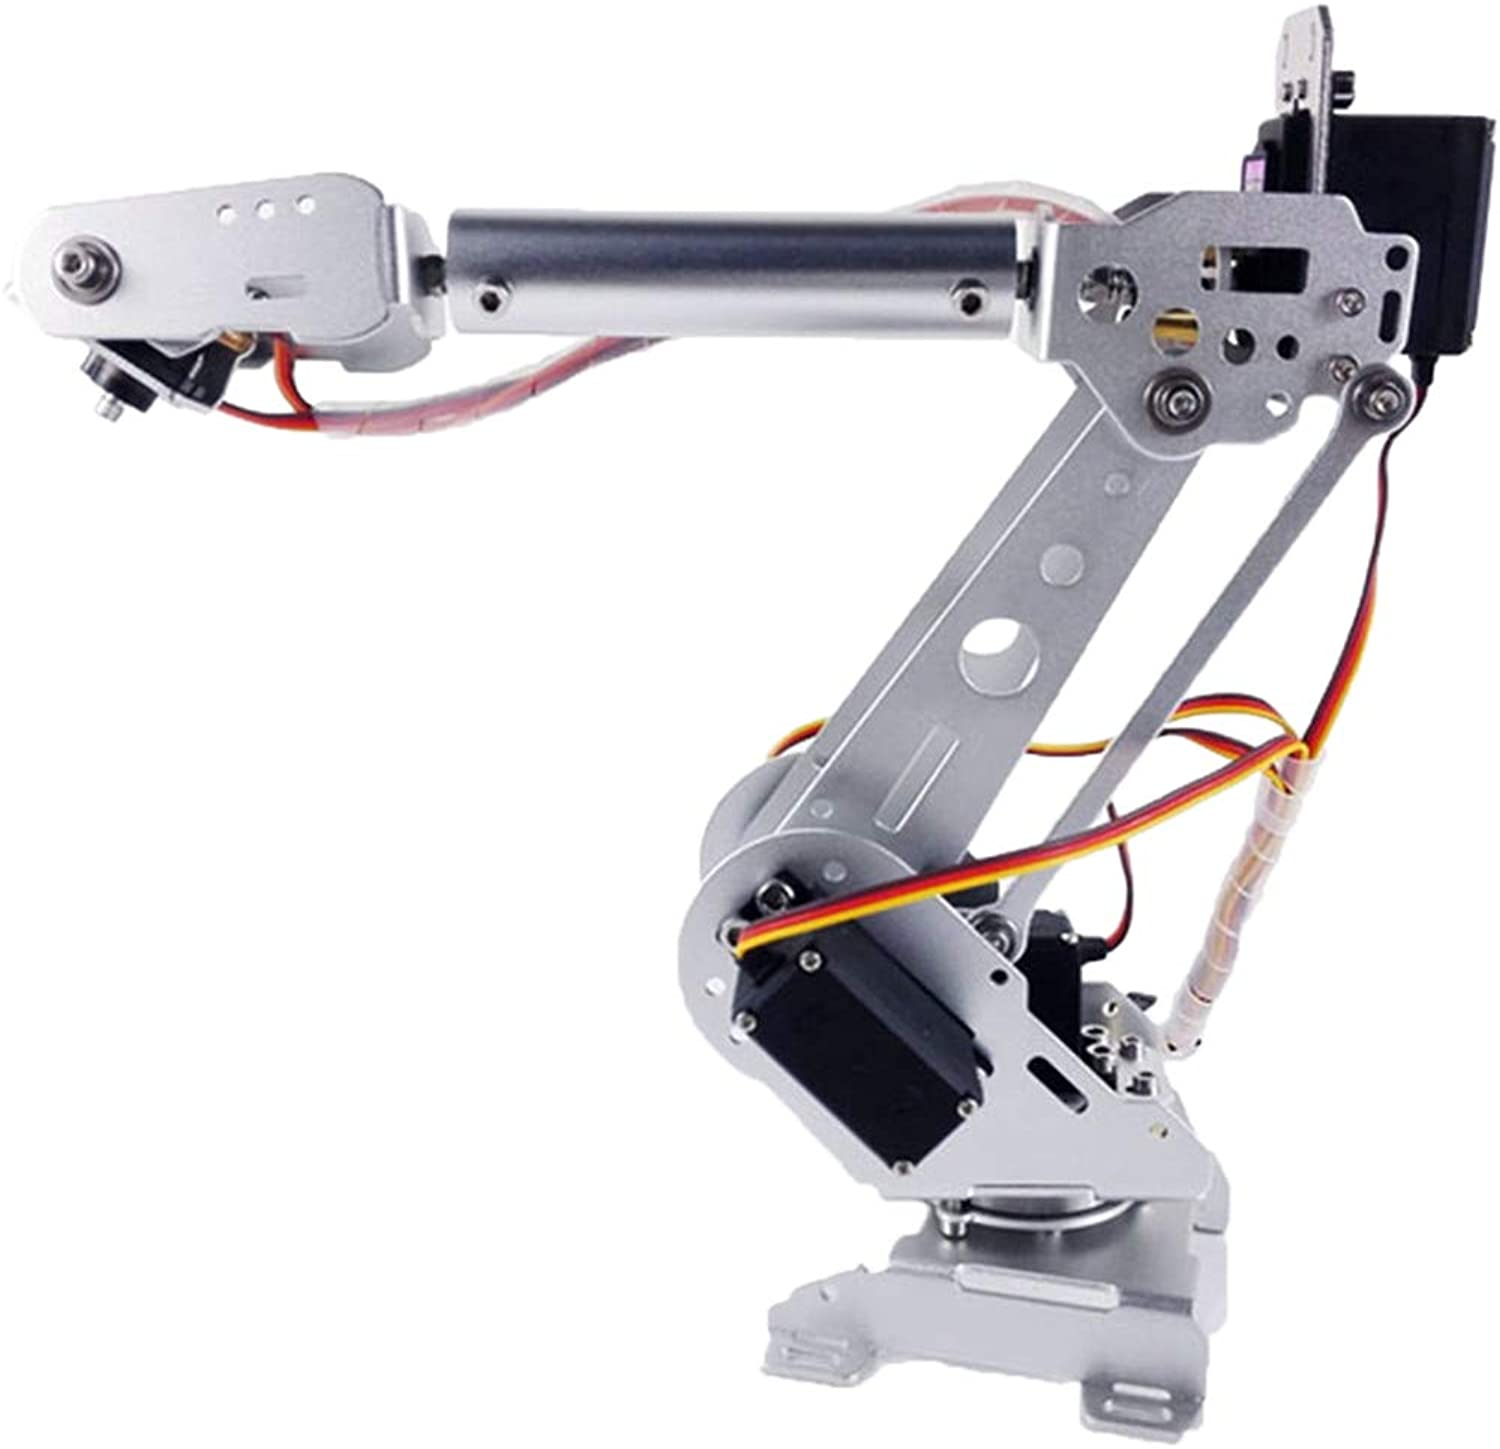 MagiDeal DIY Robot Arm Claw 6 DOF Robot Mechanical Arm Kits with